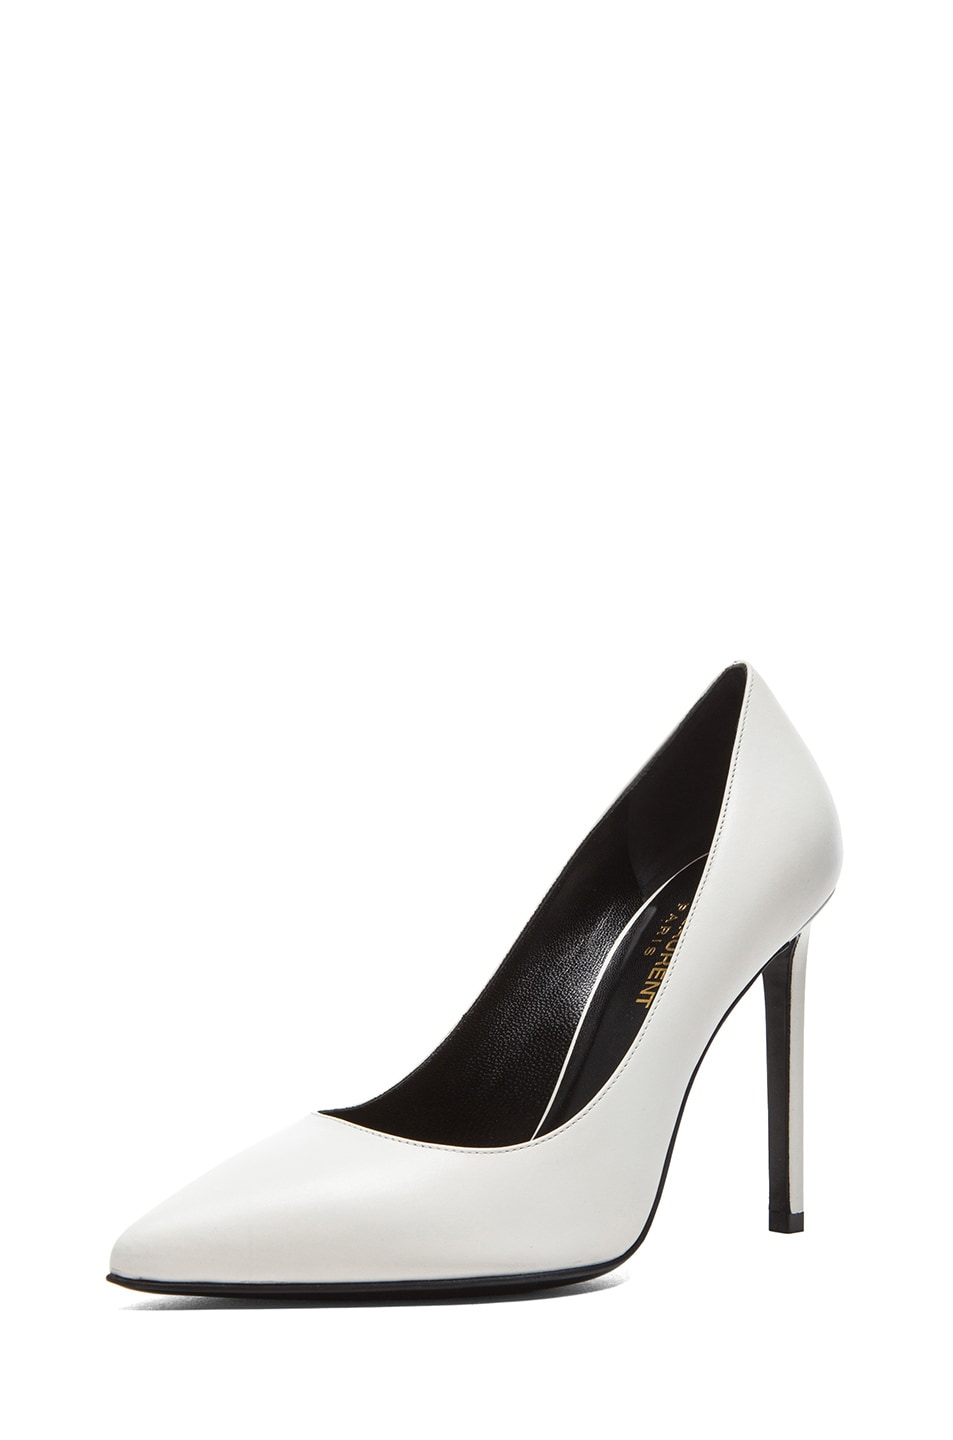 Image 2 of Saint Laurent Paris Calfskin Leather Pumps in White